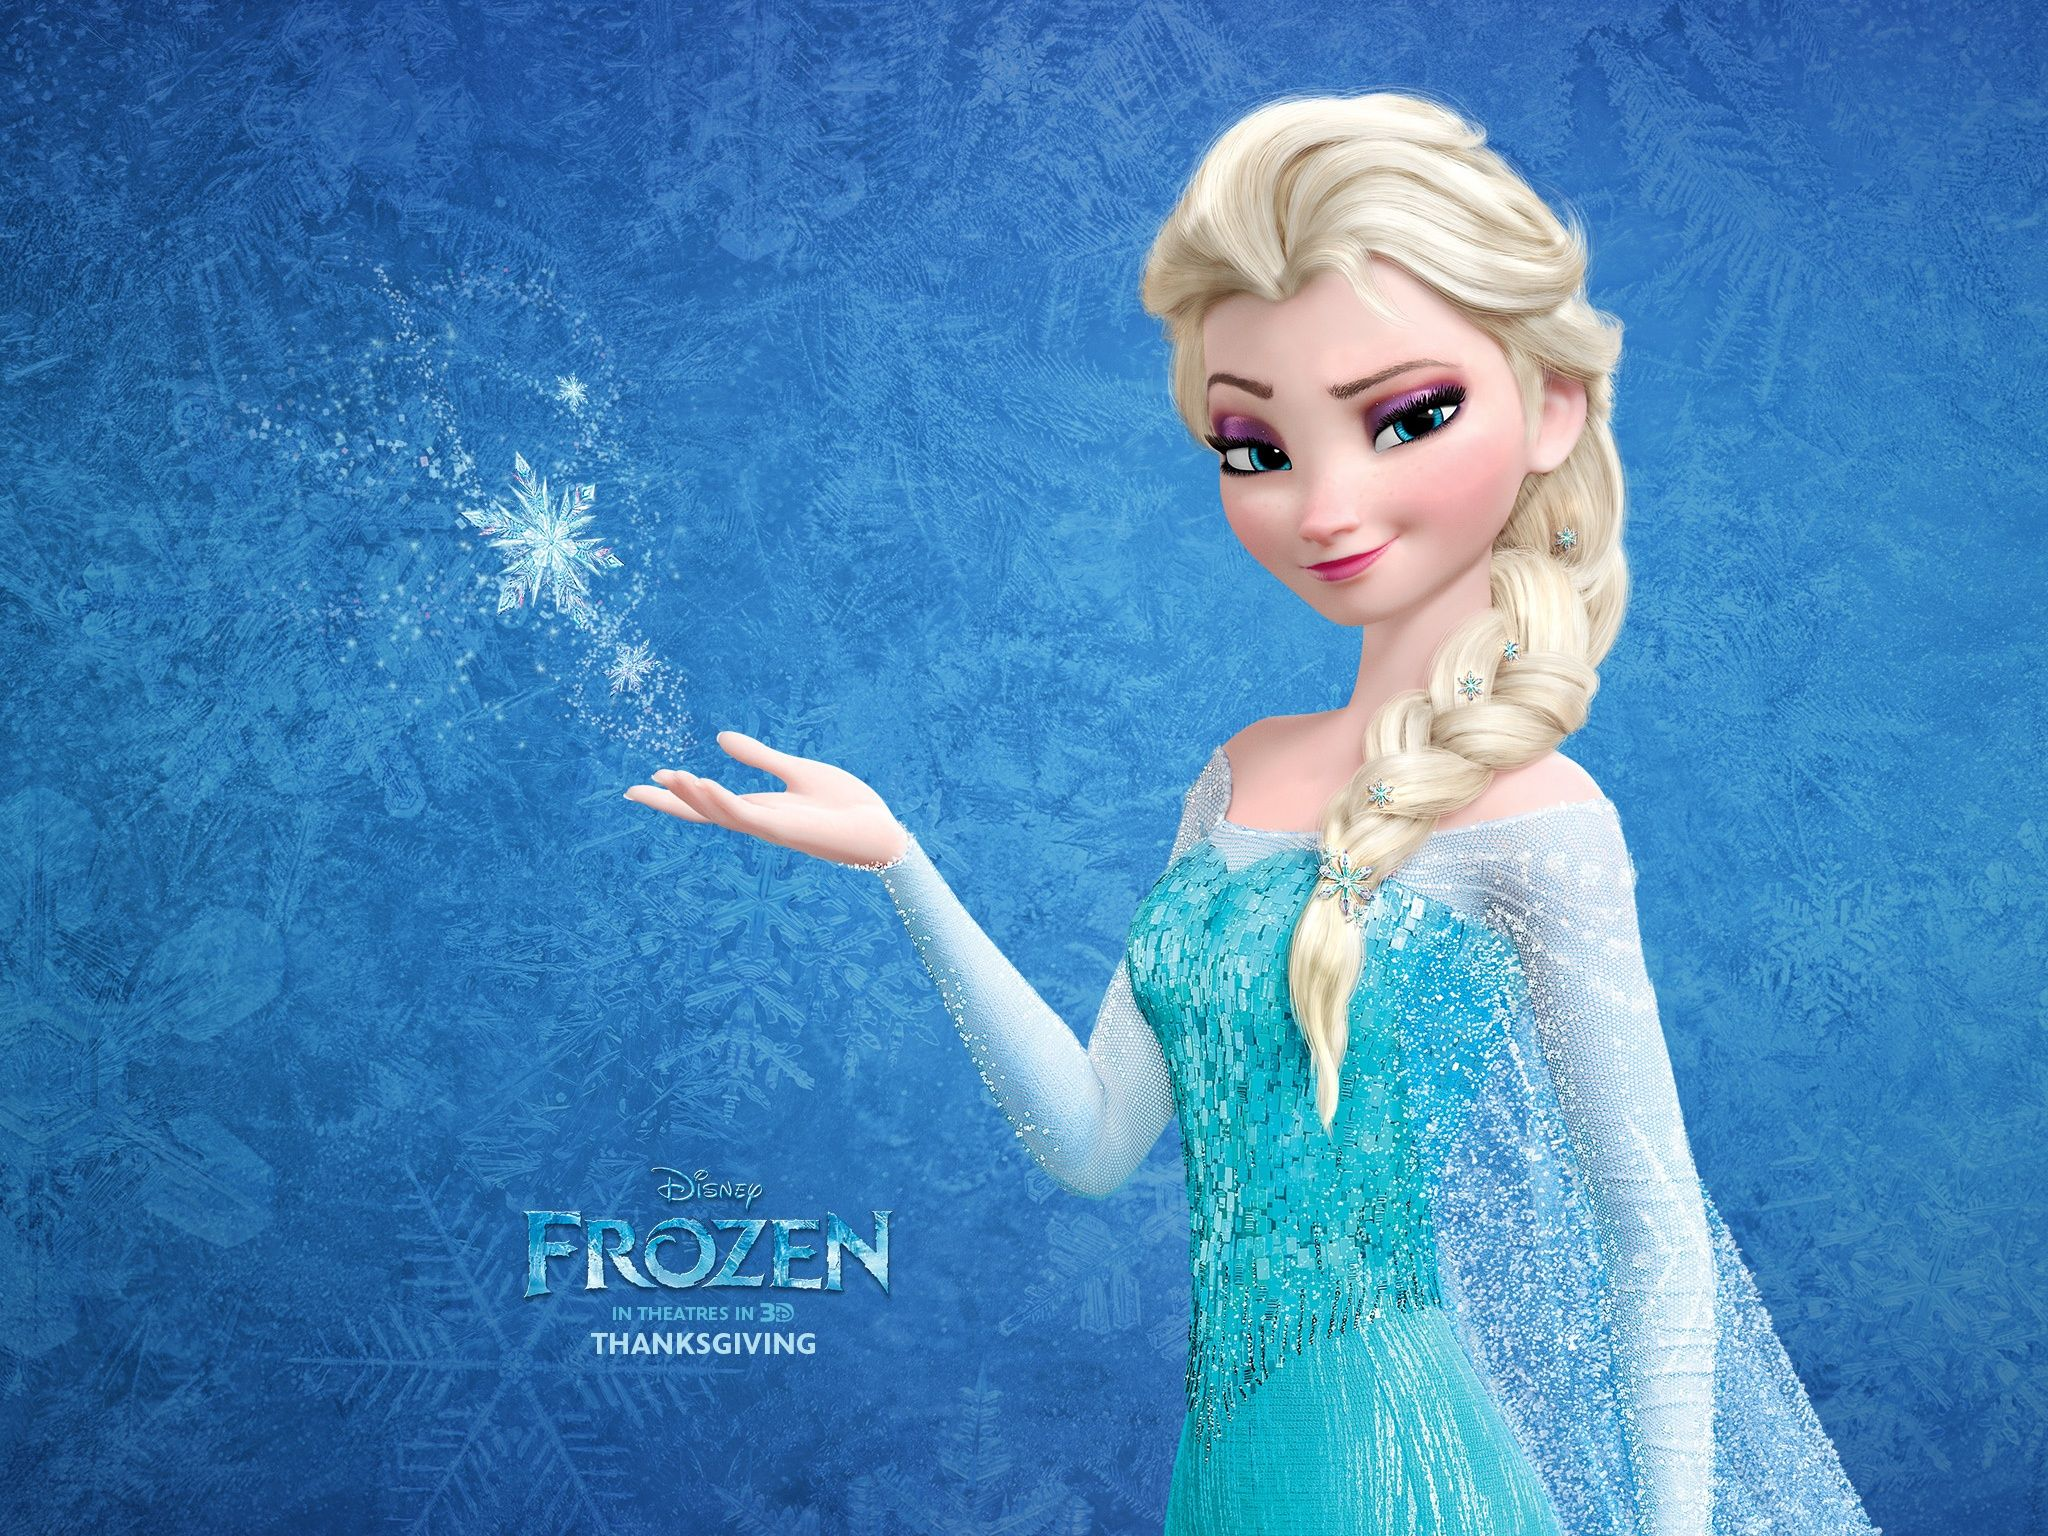 best ideas about Frozen wallpaper on Pinterest Disney frozen